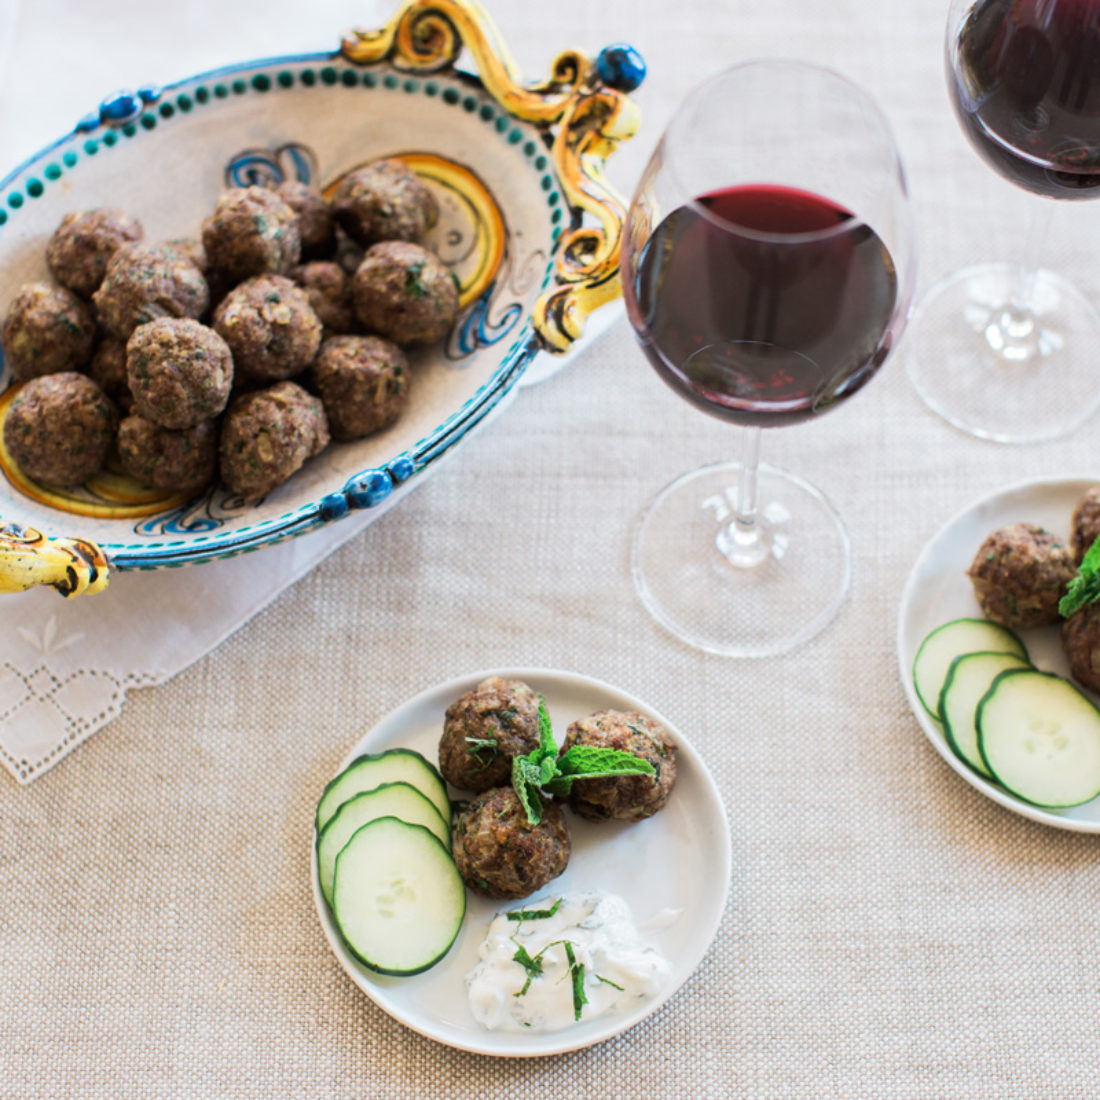 Mediterranean Lamb Meatballs with Savory Herb Yogurt Dip